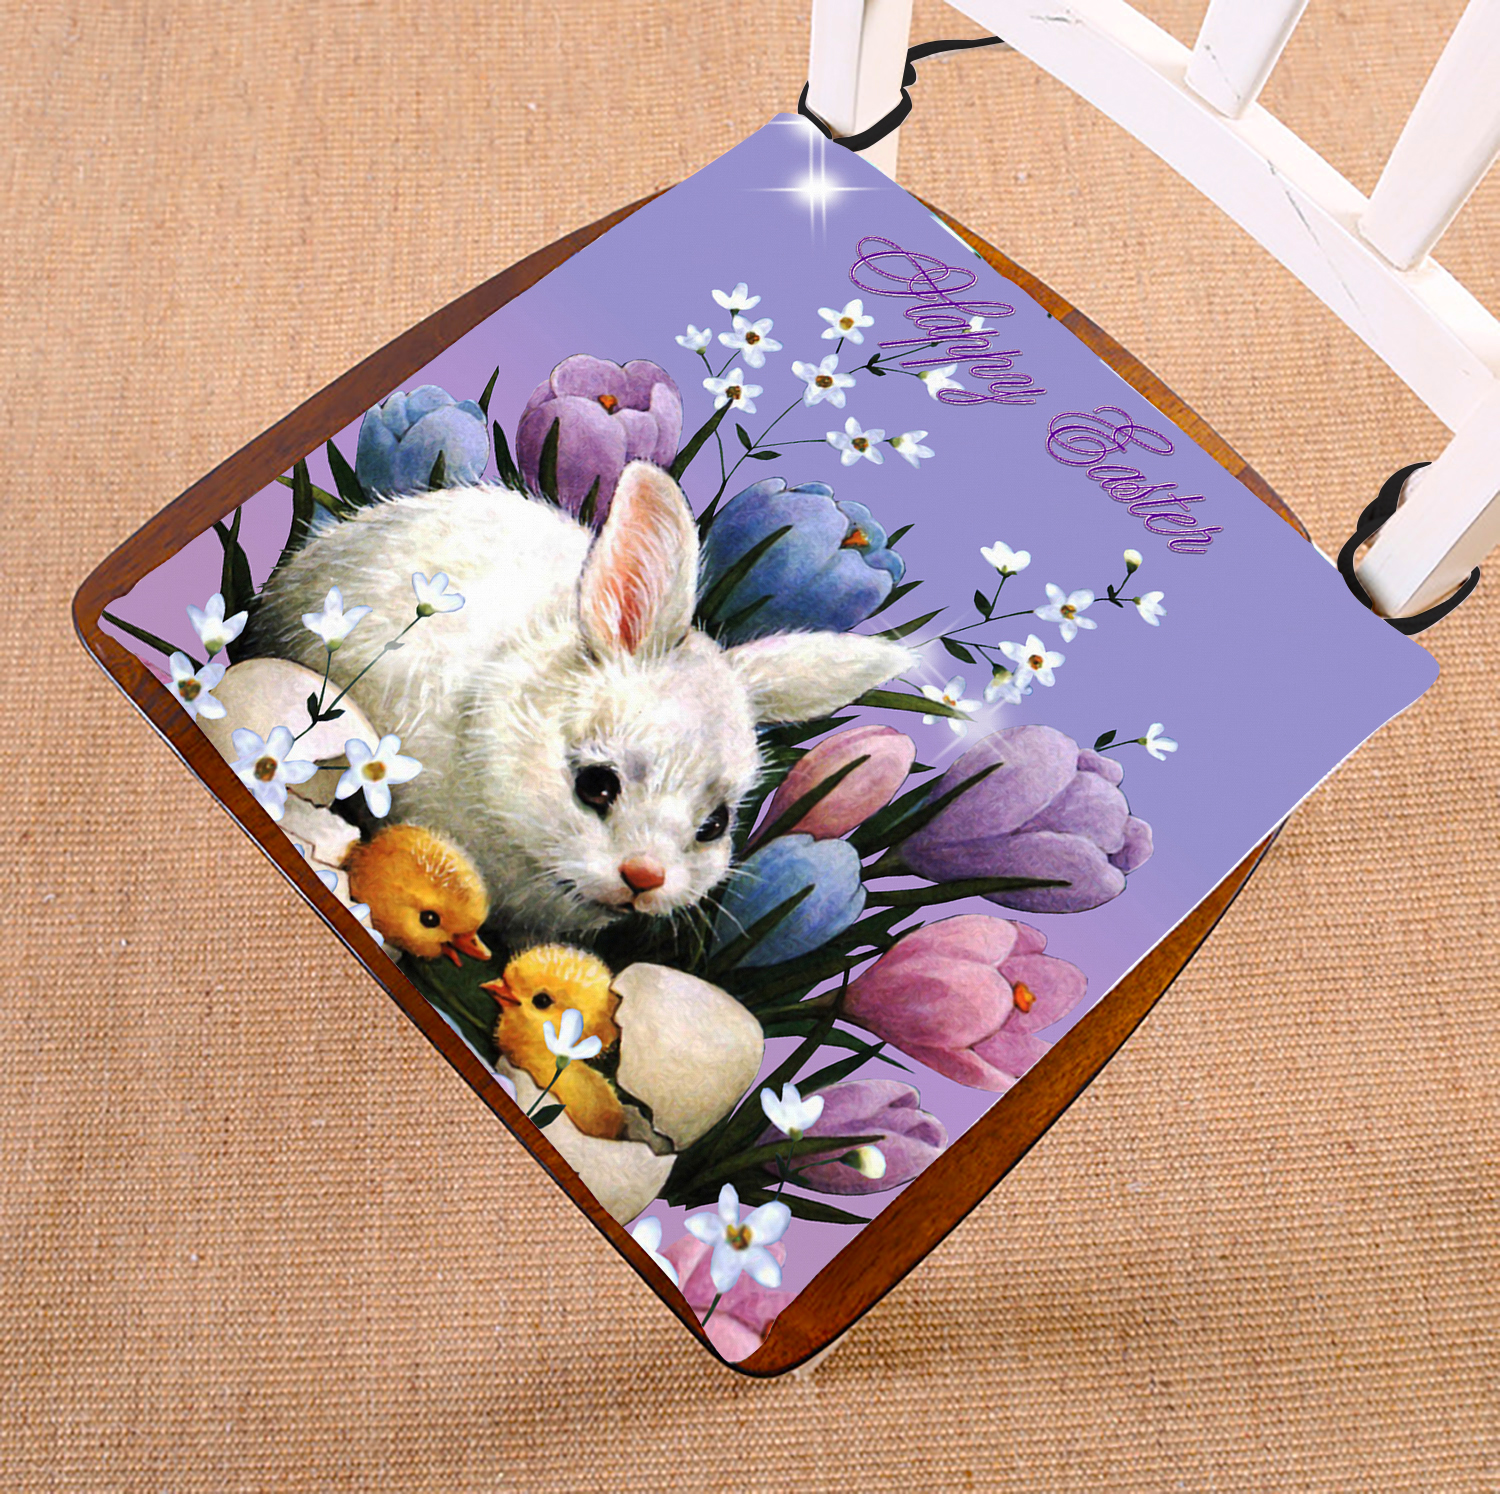 GCKG Happy Easter New Style Chair Pad Seat Cushion Chair Cushion Floor Cushion with Breathable Memory Inner Cushion and Ties Two Sides Printing 16x16 inches